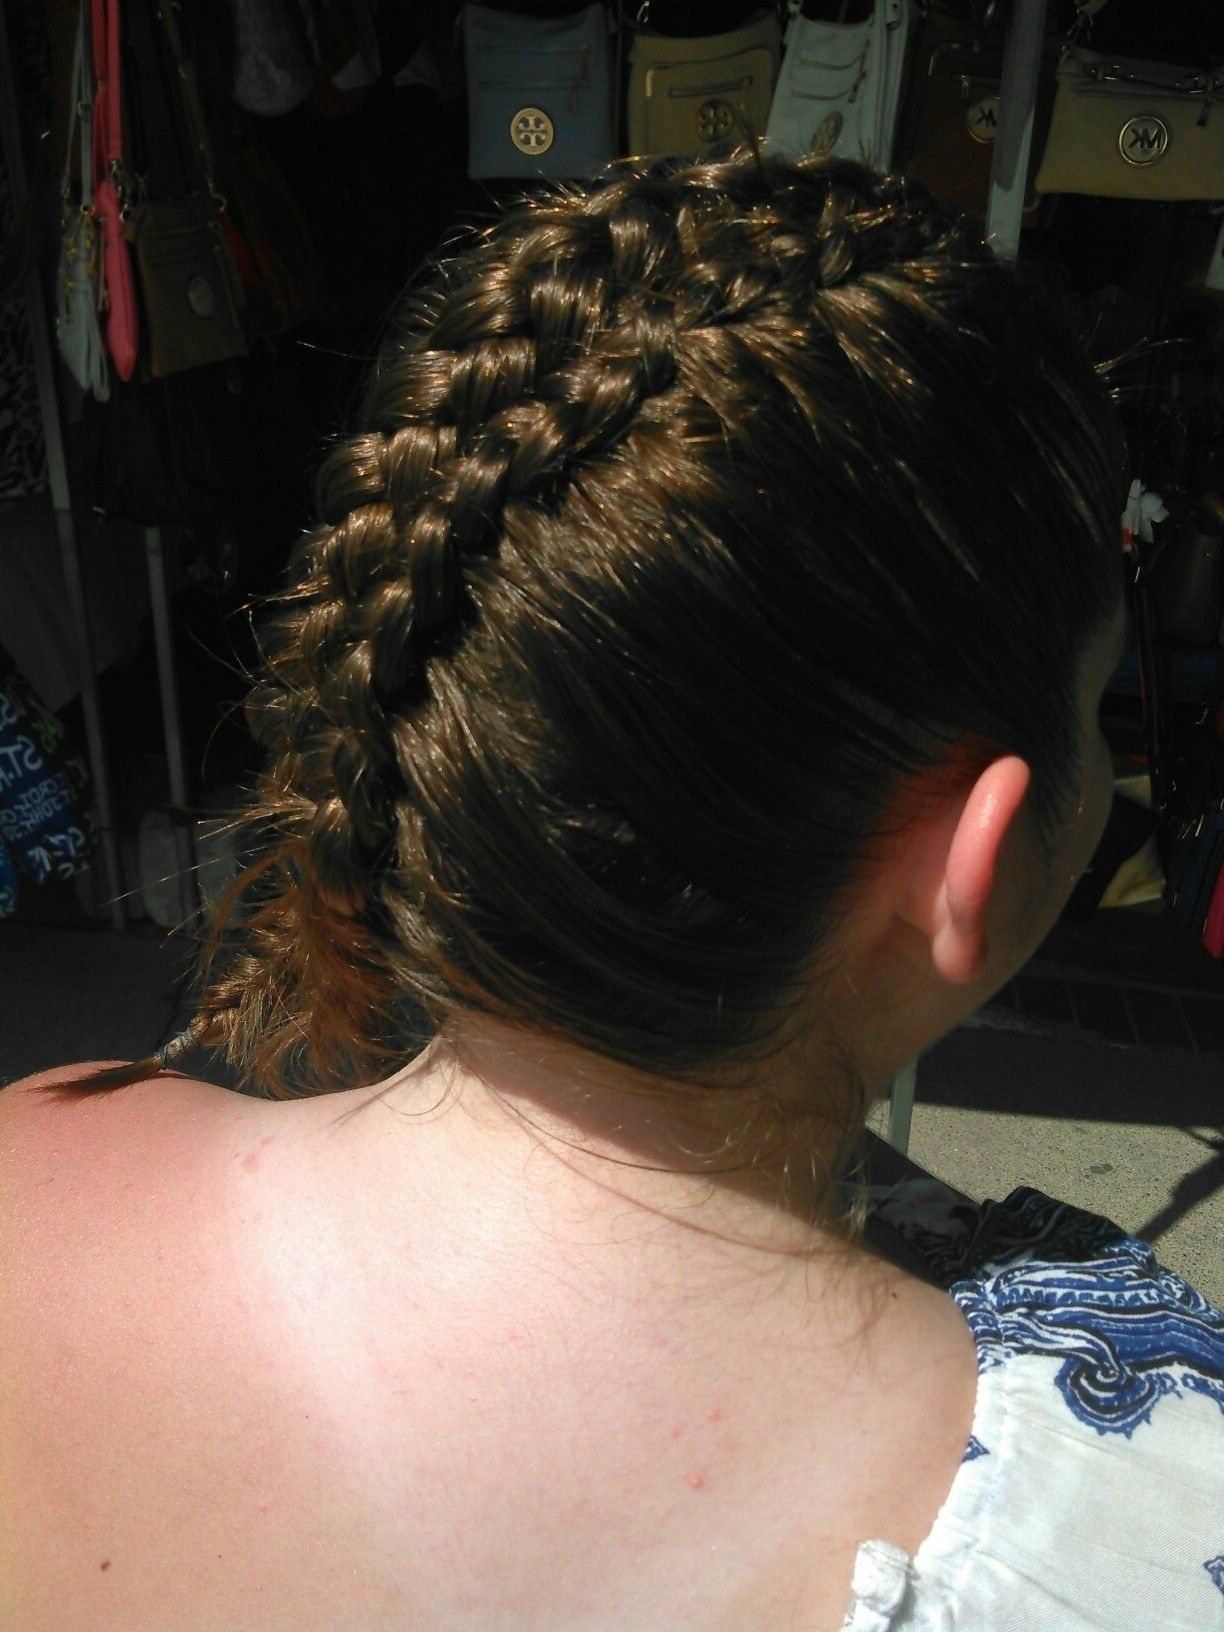 Dutch Intended For Most Current Braids Hairstyles With Curves (Gallery 10 of 15)